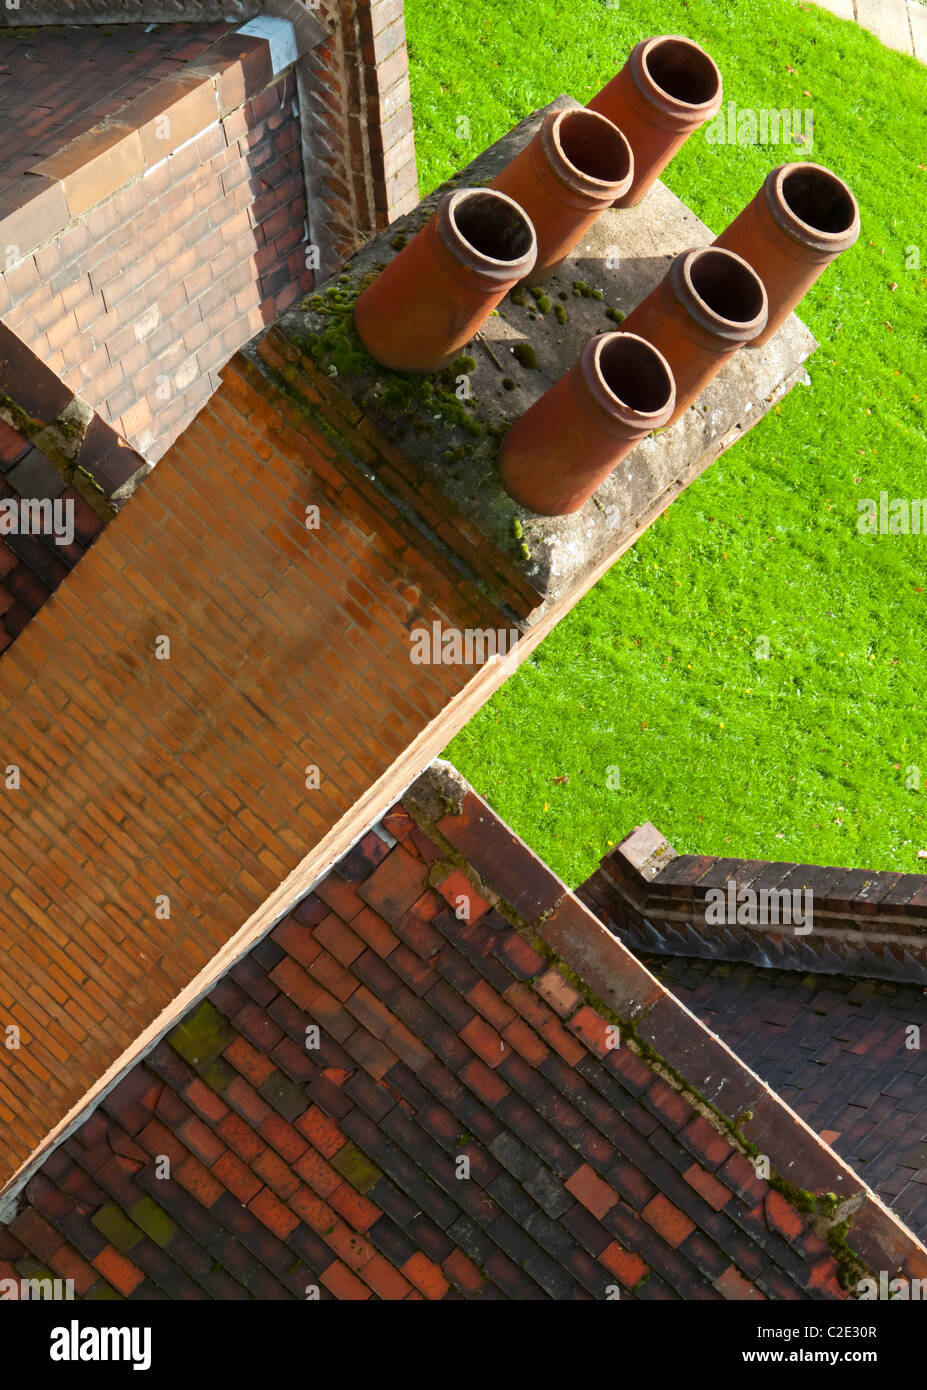 Brick Chimney Roof Tiles Stock Photos & Brick Chimney Roof ...